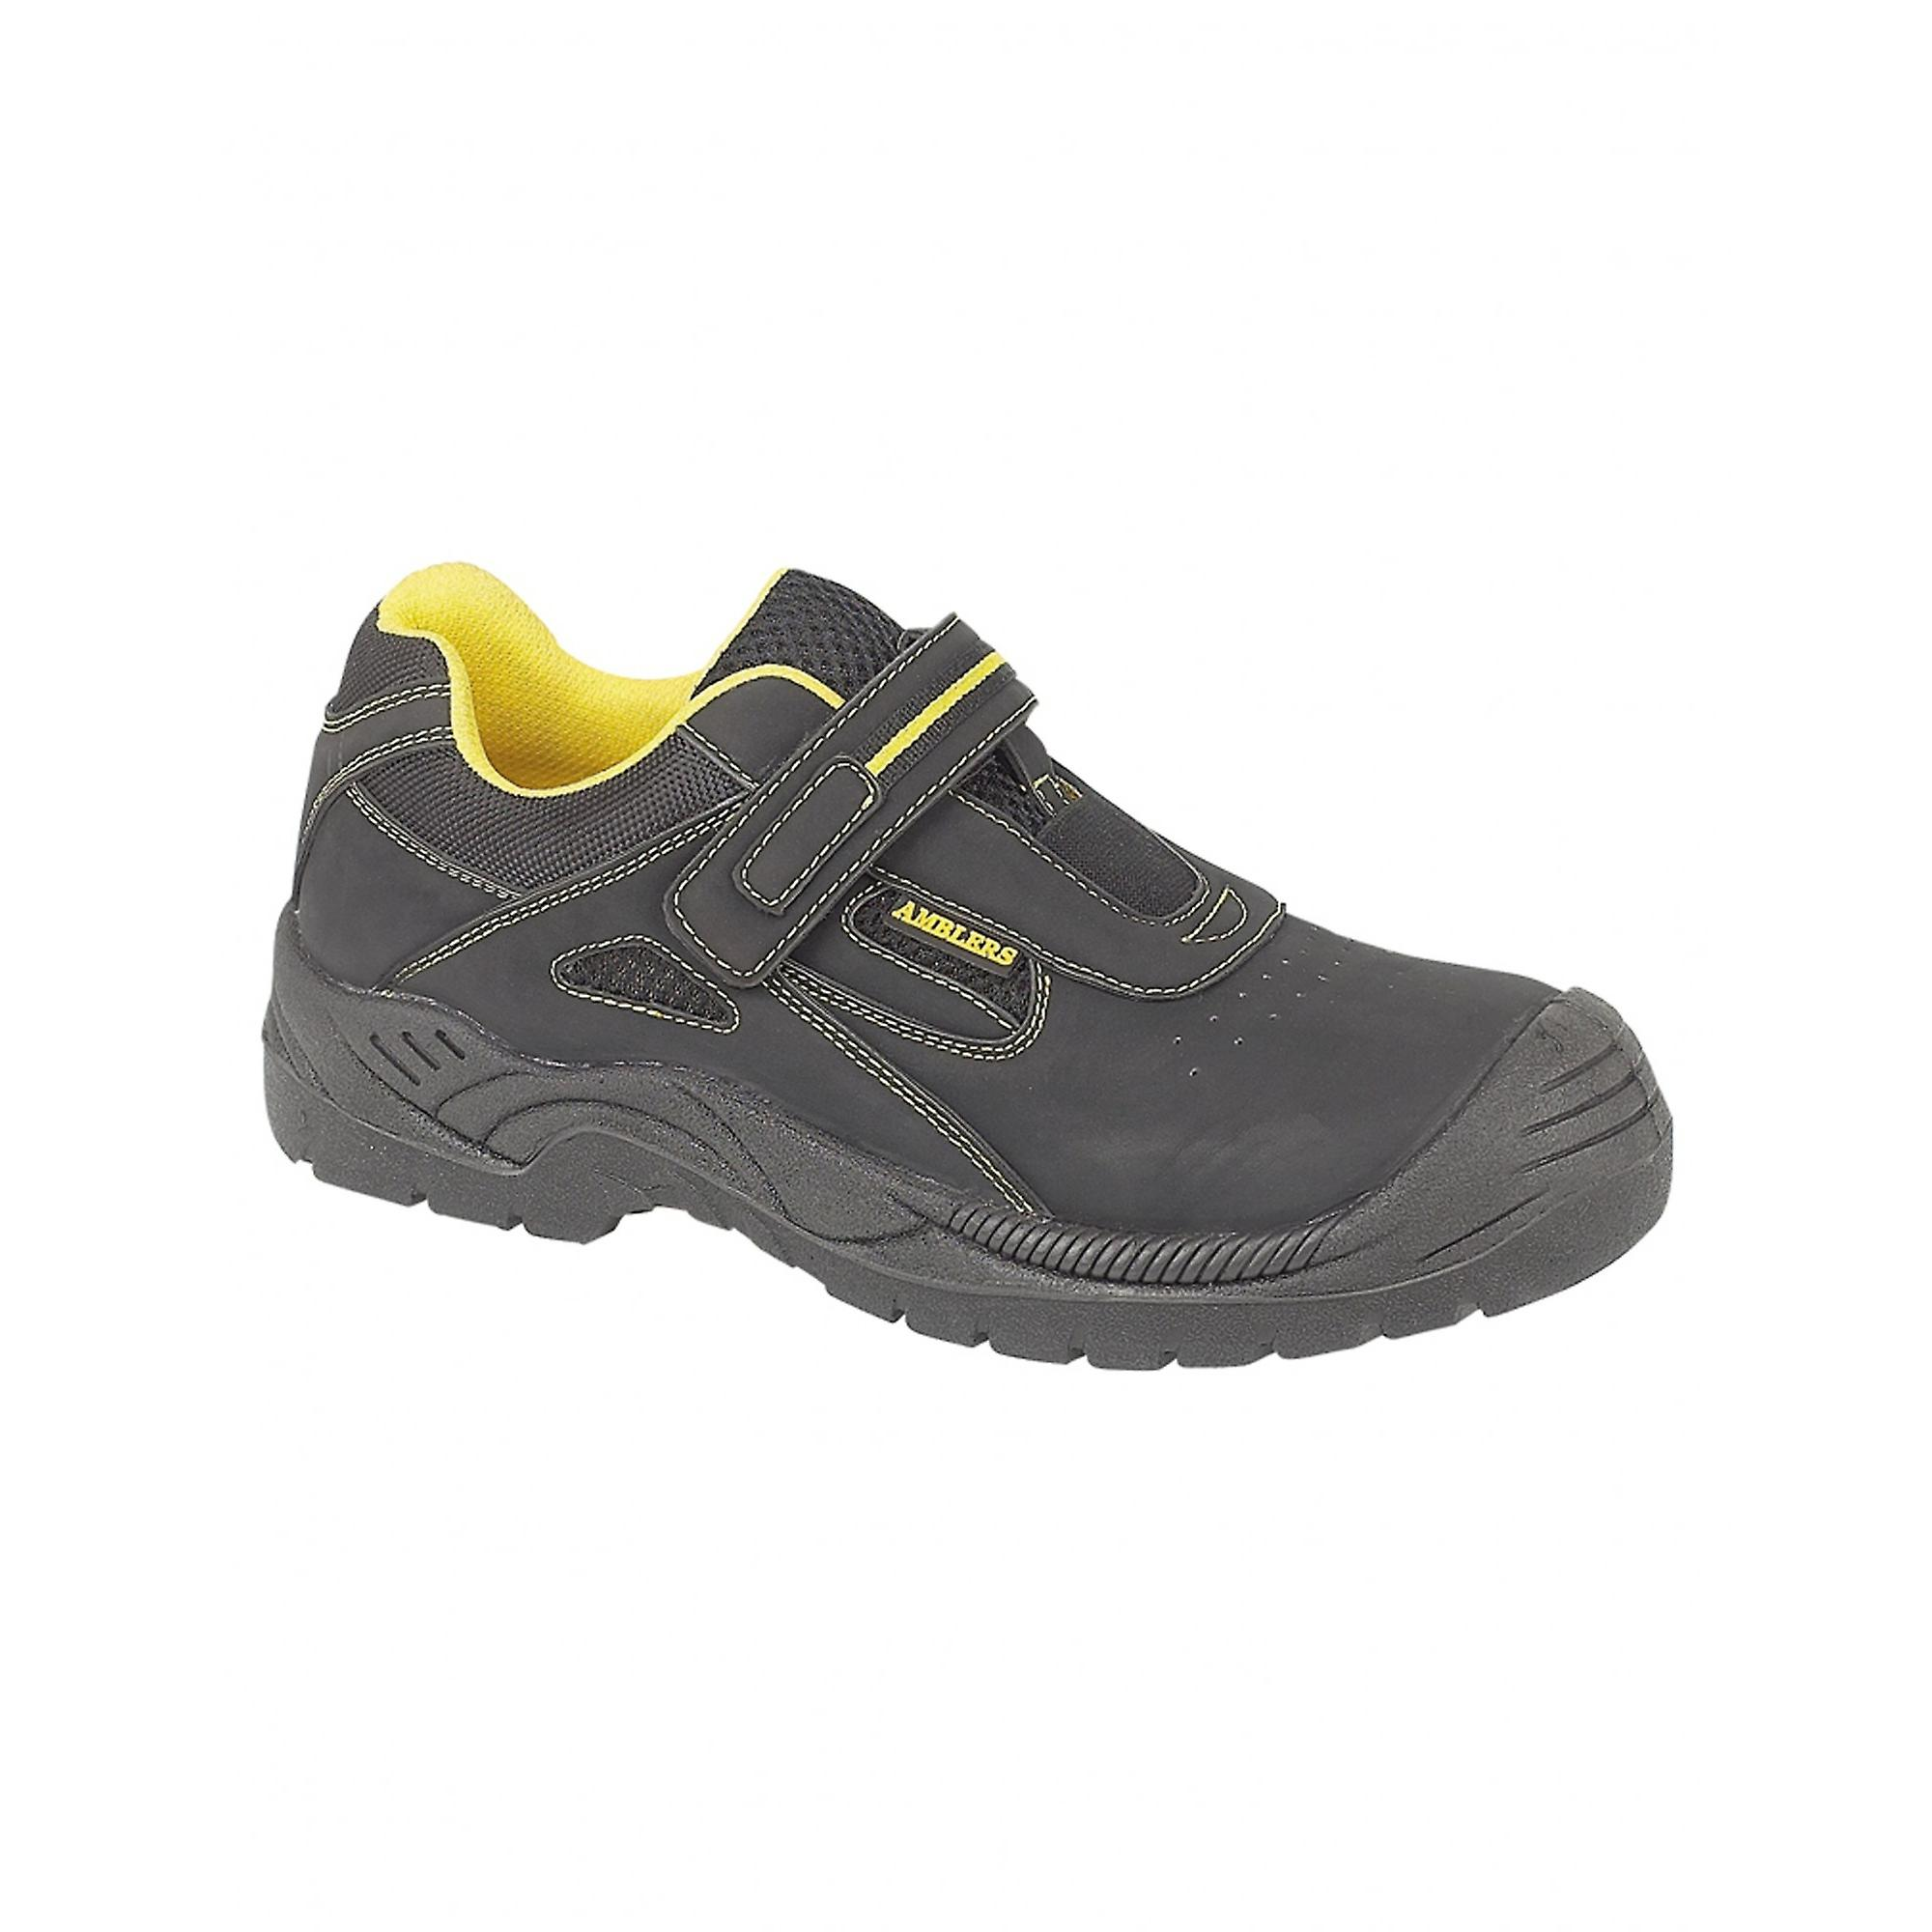 Mens Safety Amblers Trainer Trainers Safety FS77 dPTnwWqTI